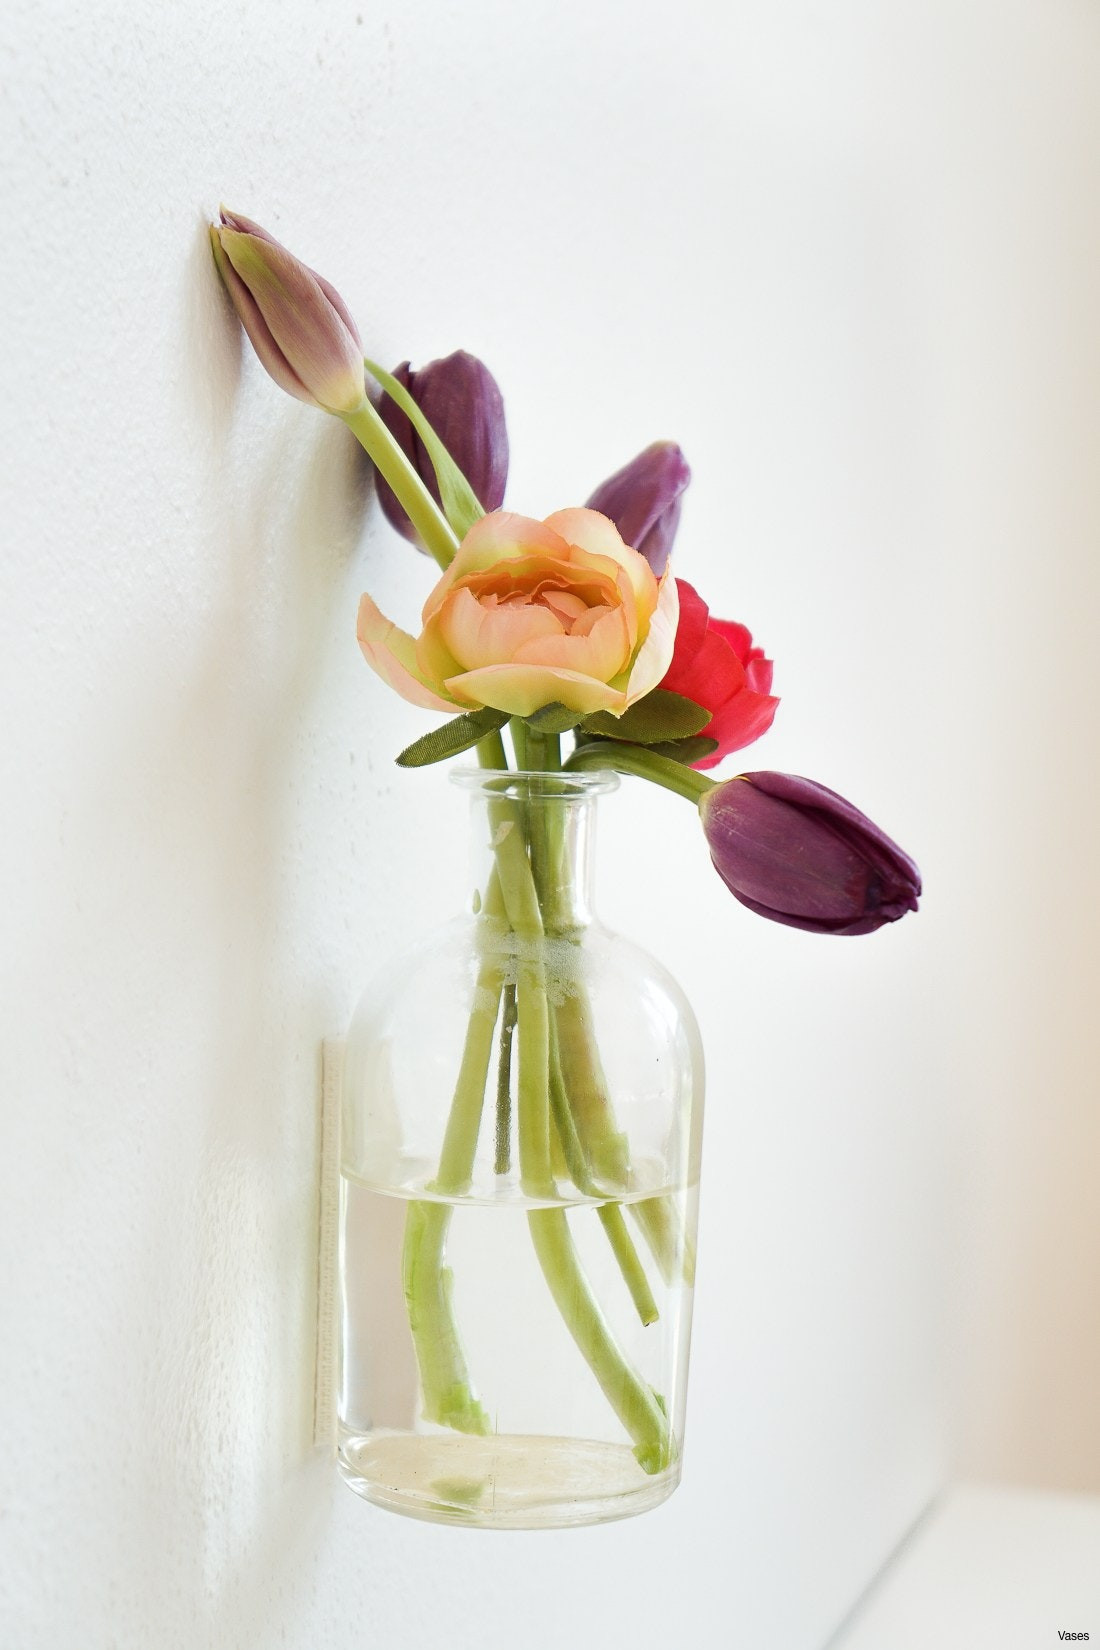 13 attractive Little Flower Vases 2021 free download little flower vases of 38 beautiful decorative wall sconces creative lighting ideas for home regarding il fullxfull l7e9h vases wall flower vase zoomi 0d decor inspiration inspiration flower